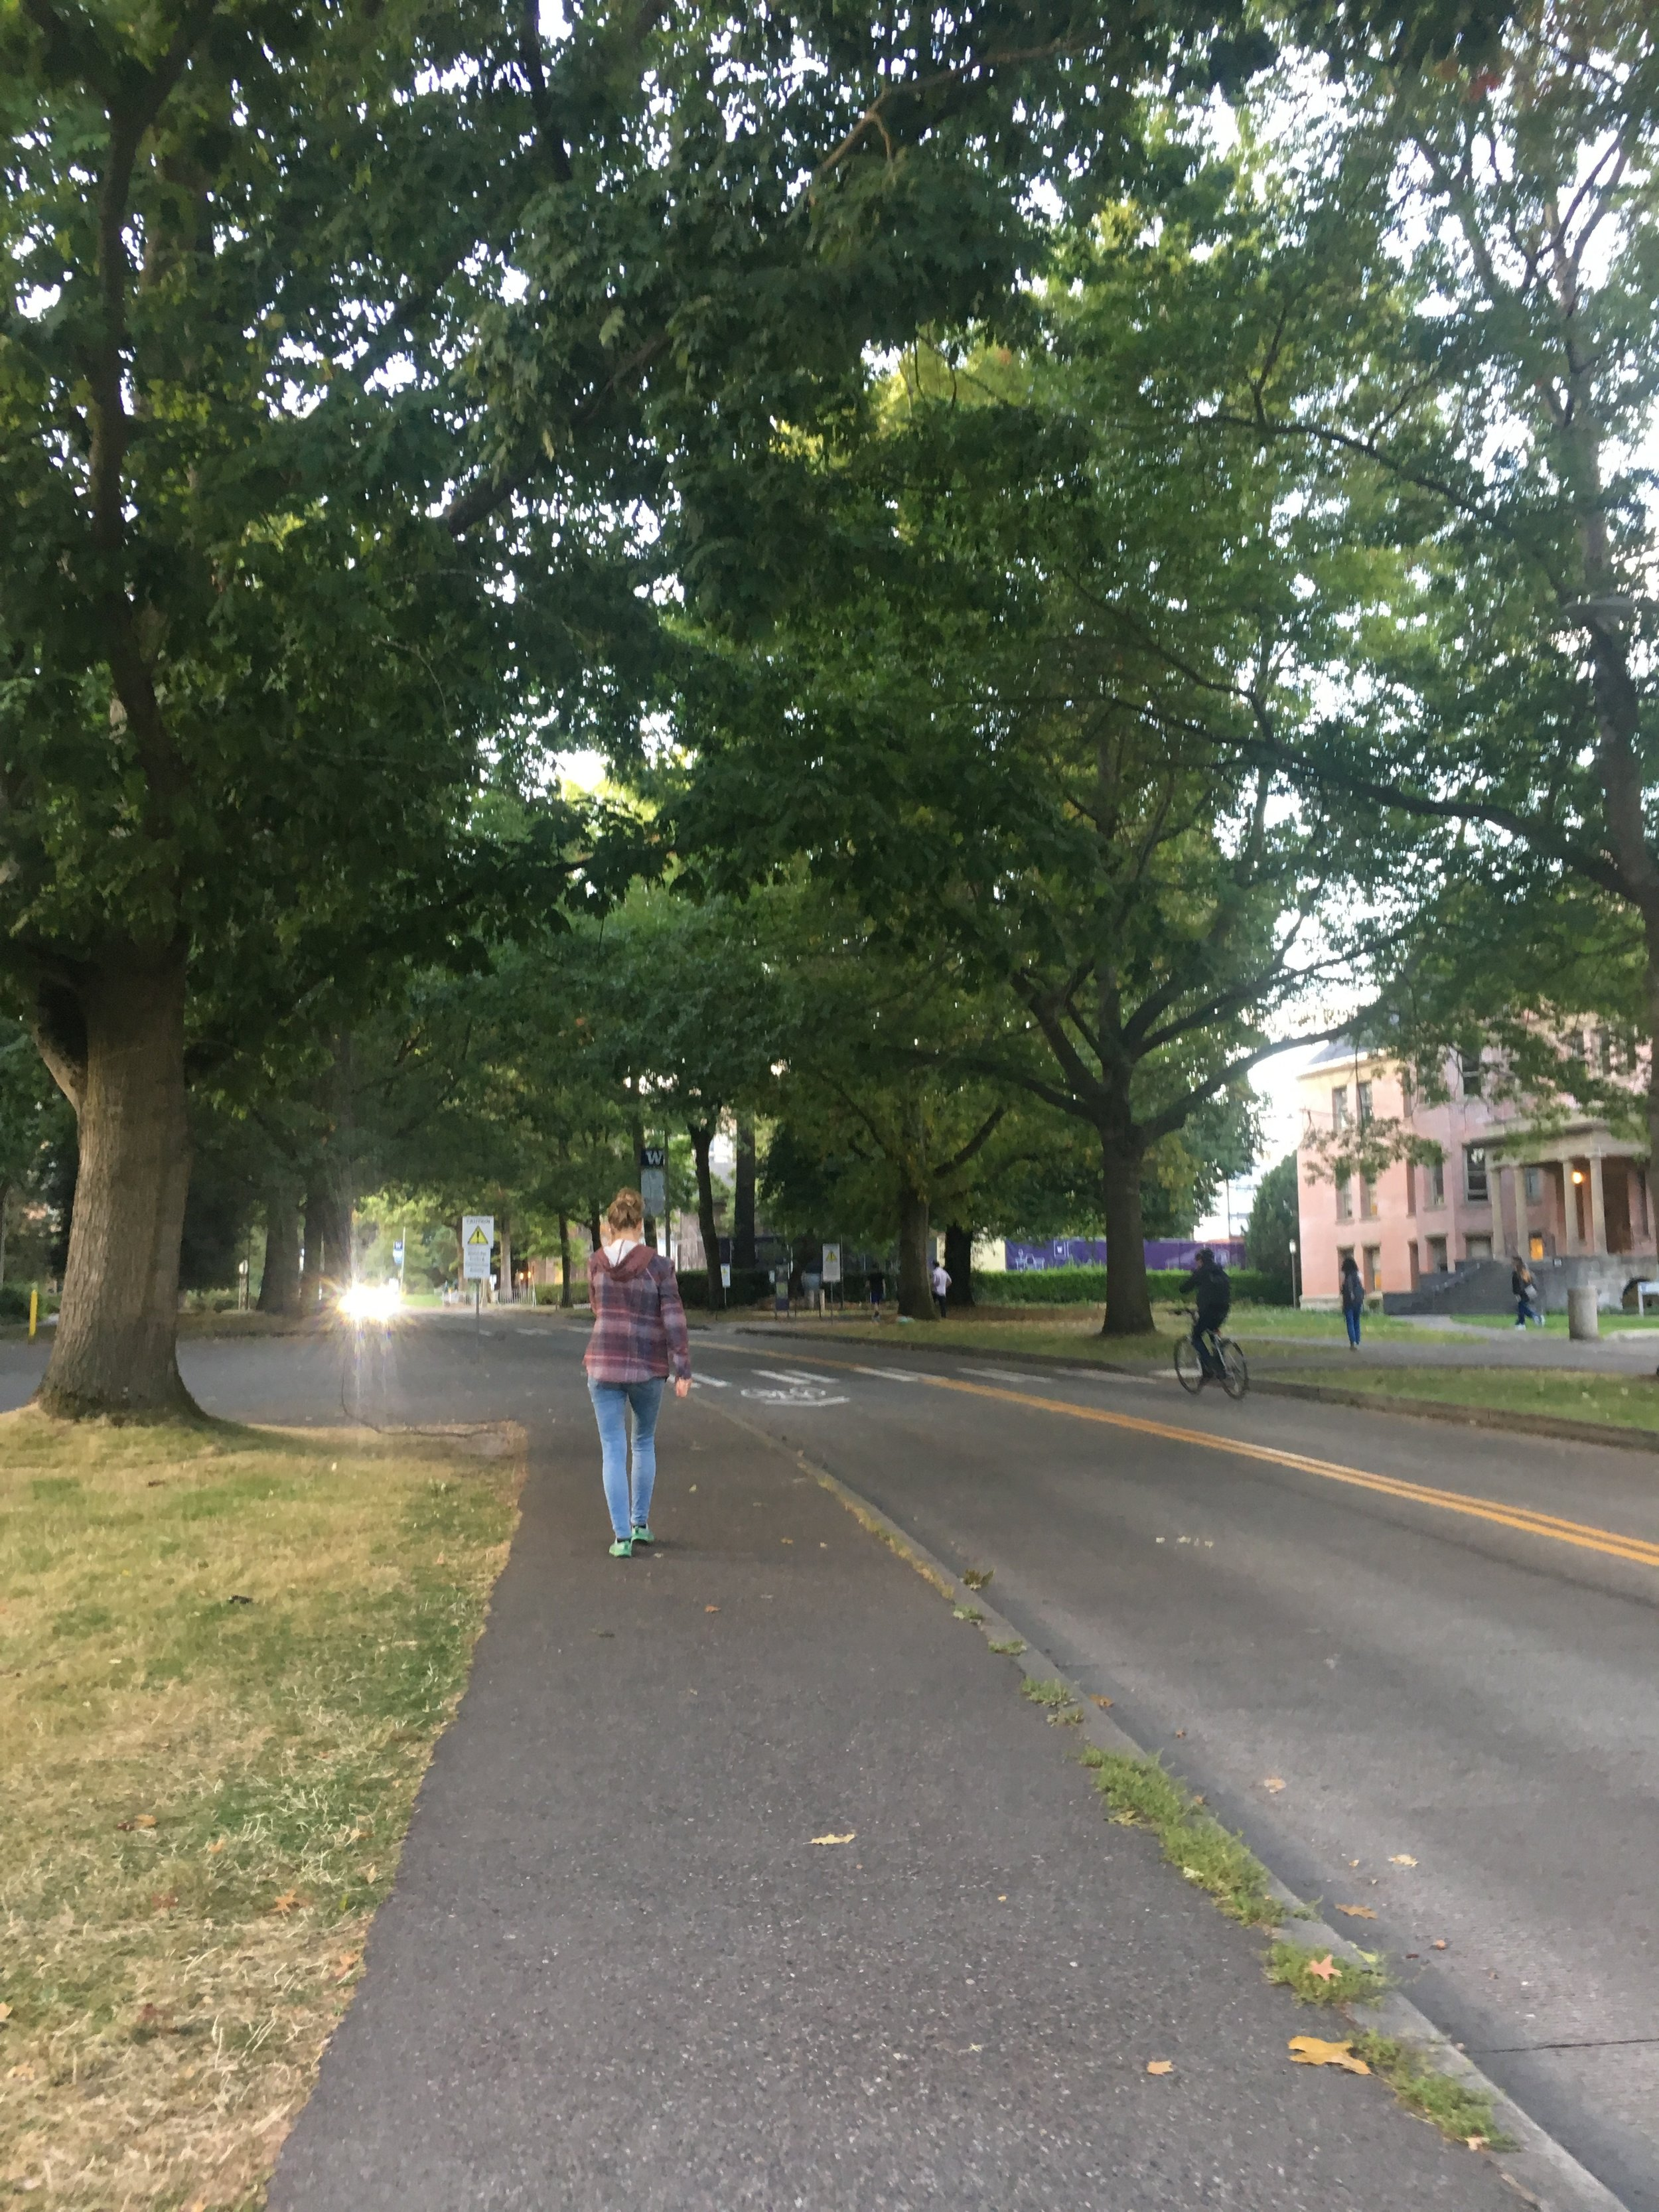 I loved all the trees on University of Washington's campus